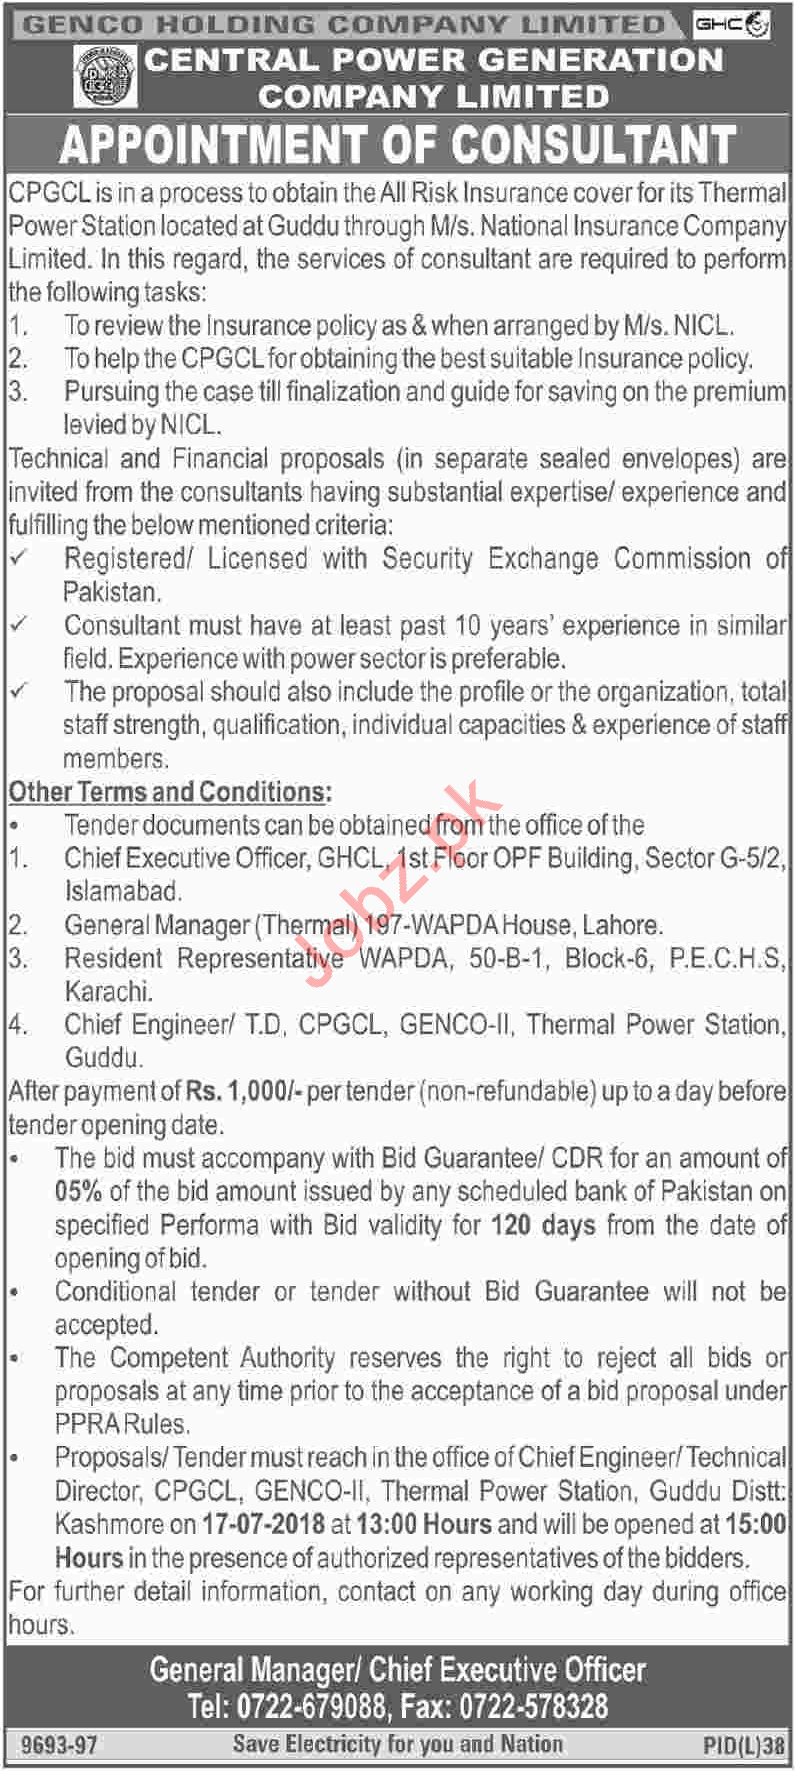 GENCO Holding Company Limited Jobs 2018 for Consultants